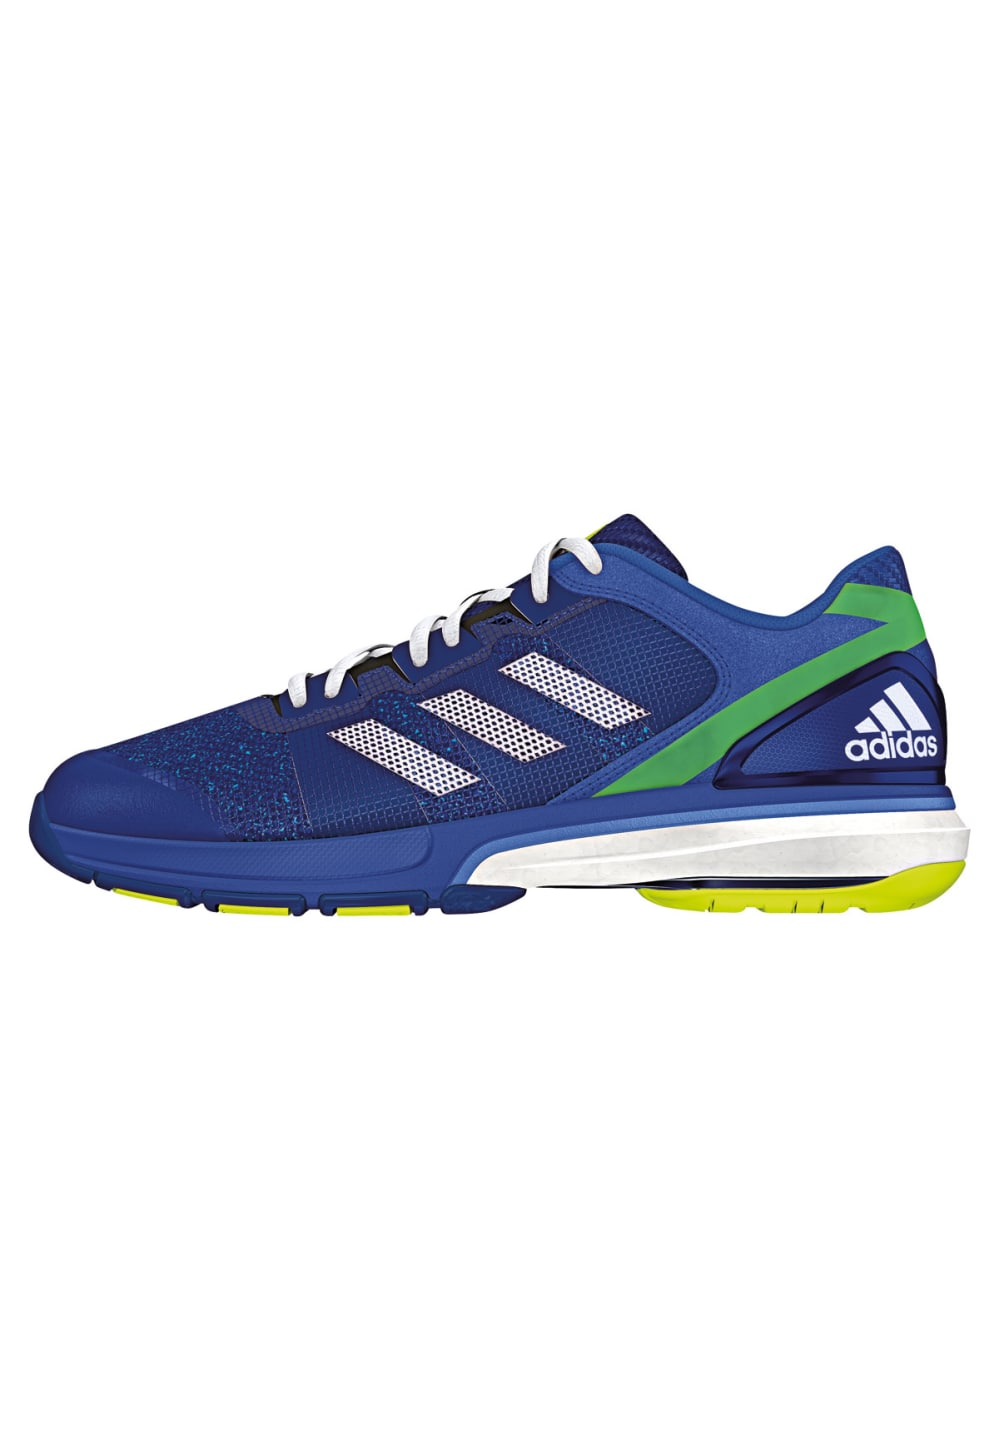 aeb1507df ... adidas Stabil Boost II - Handball shoes for Men - Blue. Back to  Overview. 1  2. Previous